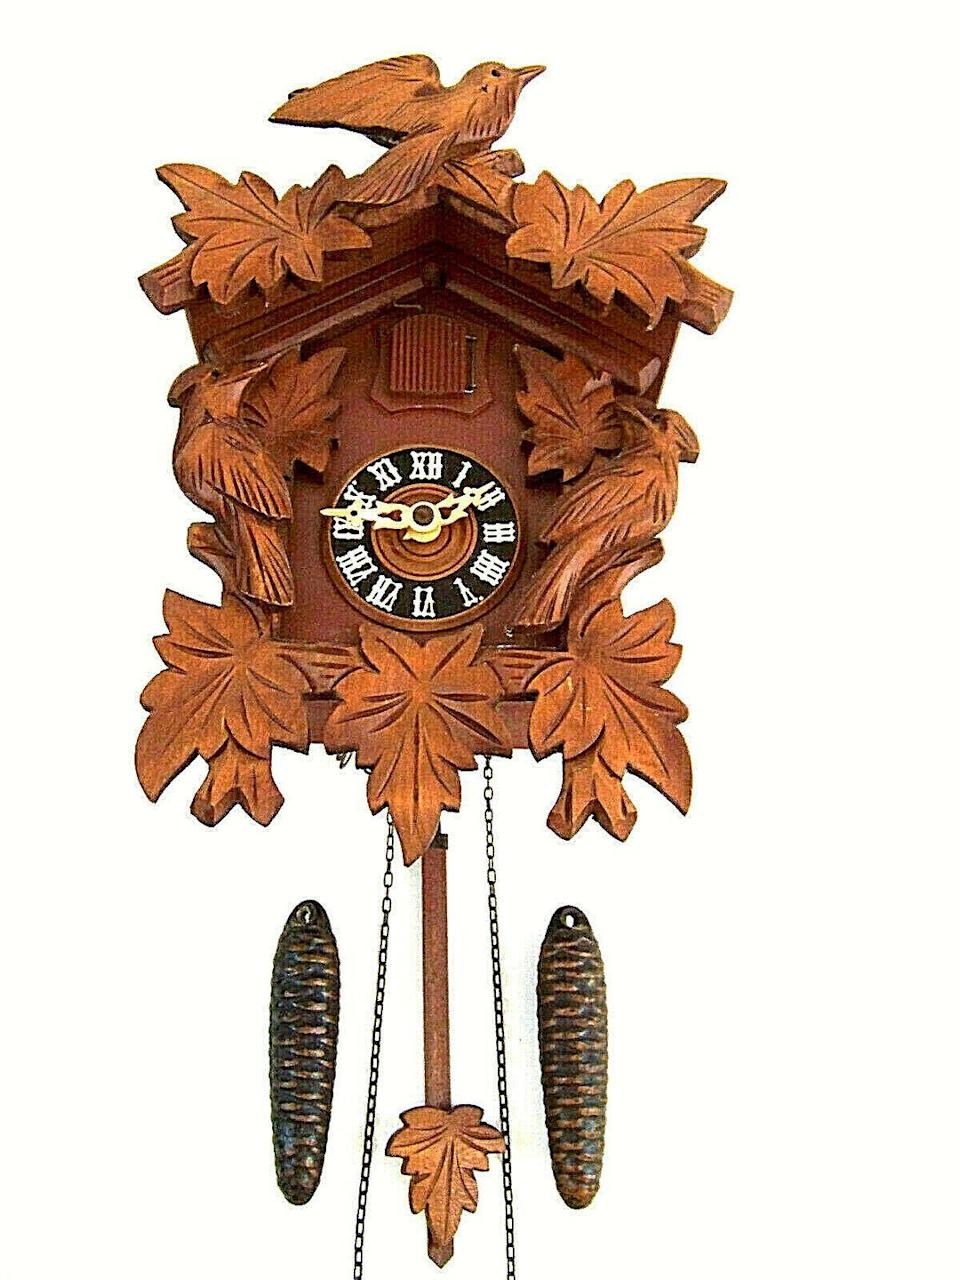 <p>If you visit Germany, you'll see cuckoo clocks in many stores, as they've become a cultural icon of the country. The creation in southwestern Germany spans back to the 1850s and have become quite a collector's item. Although the ones you see in souvenir shops today may take awhile to gain any value, check with your family members to see if they have picked one up in recent years. They've been resold at flea markets, so you could be sitting on a piece of treasure.<br></p><p><strong>What it's worth: </strong>$300</p>